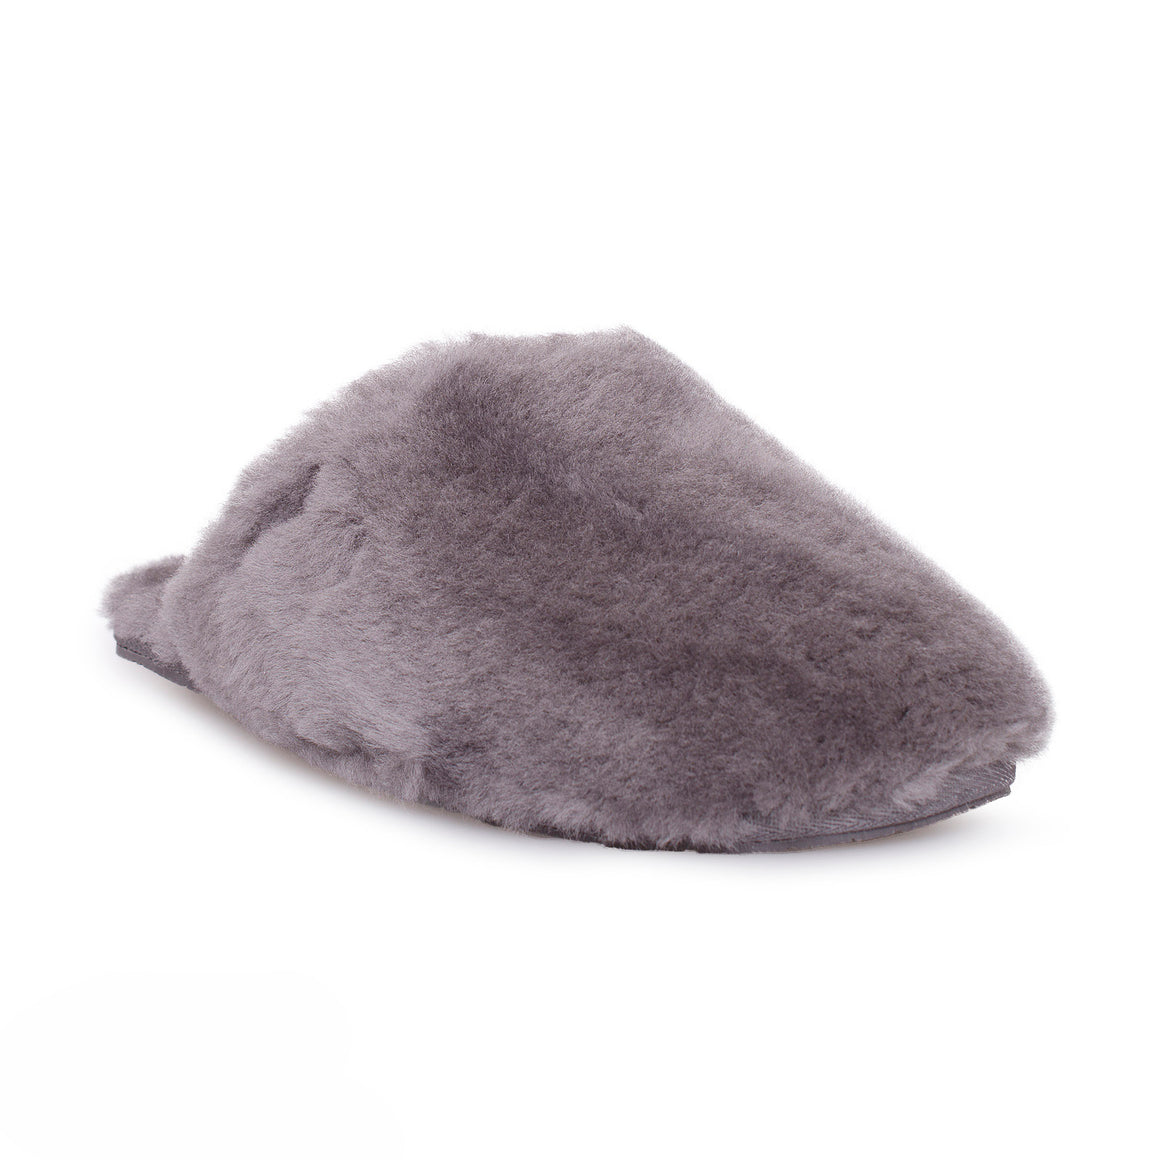 UGG Fluff Clog Grey Slippers - Women's